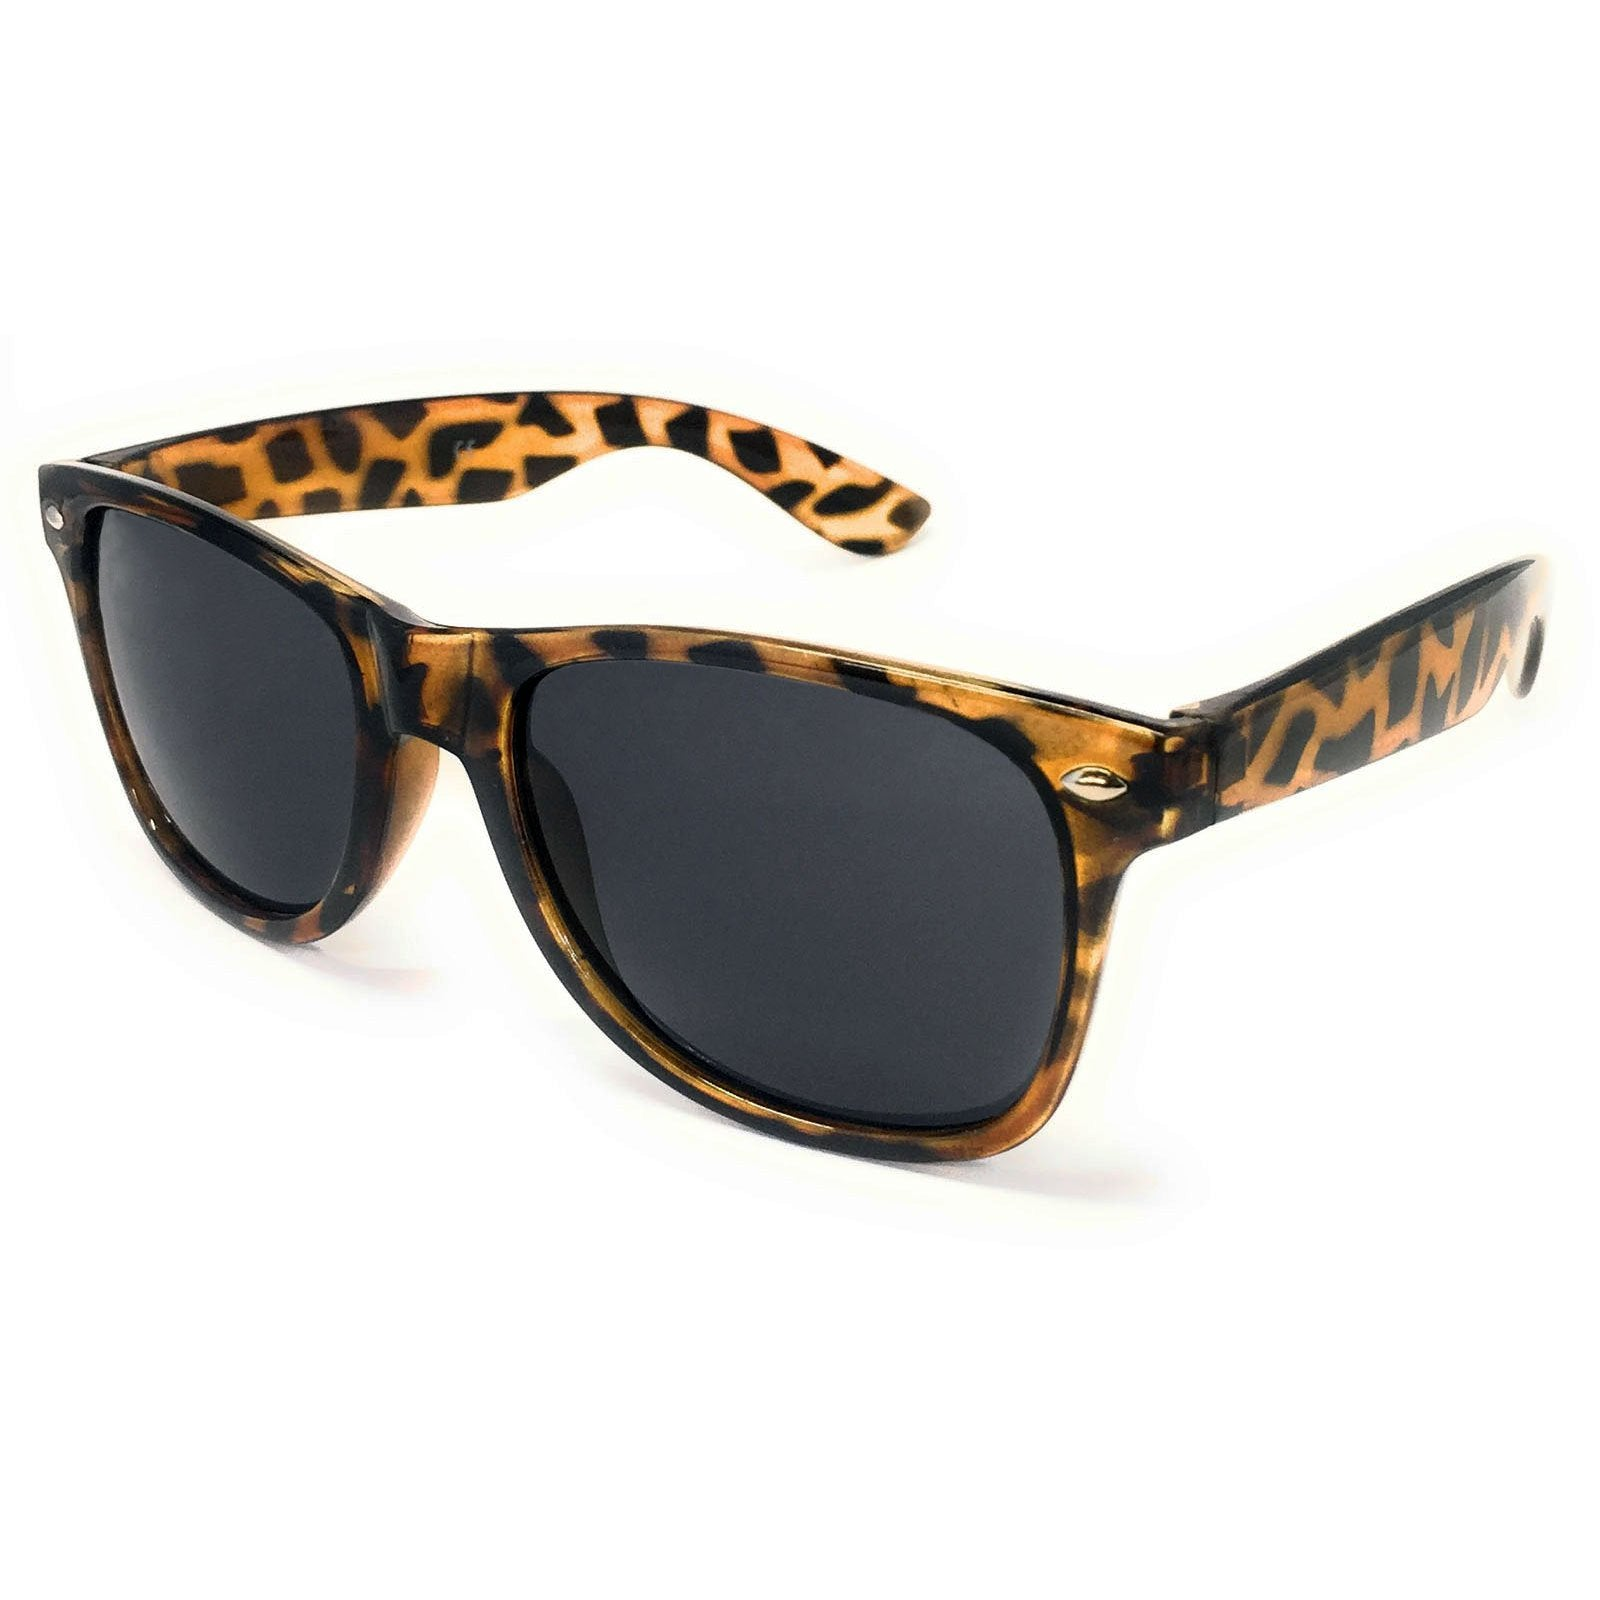 Wholesale Classic Sunglasses - Tortoise Shell Frame, Black Lens